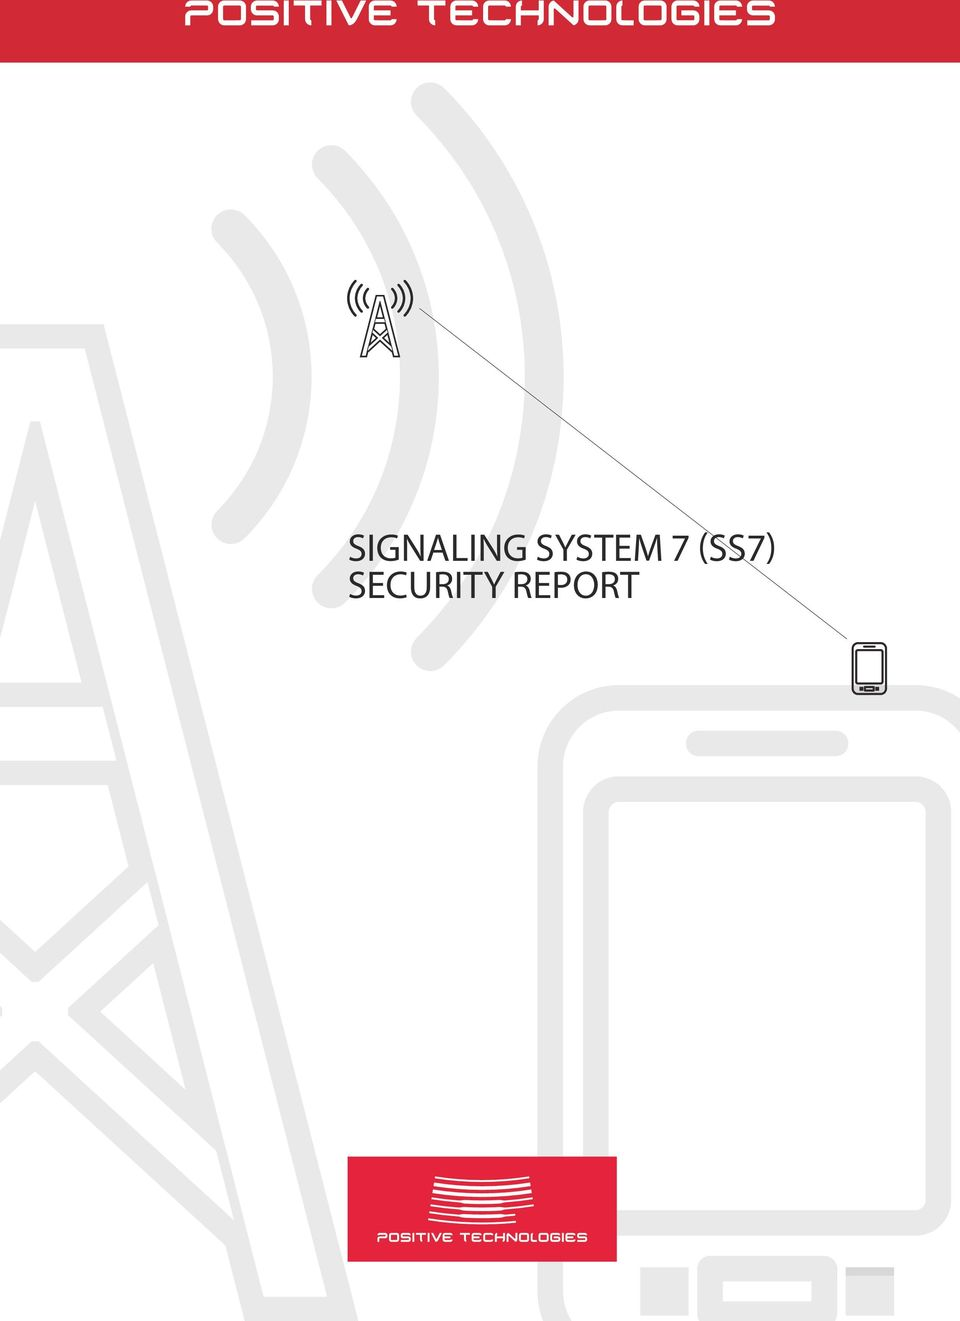 SIGNALING SYSTEM 7 (SS7) SECURITY REPORT - PDF